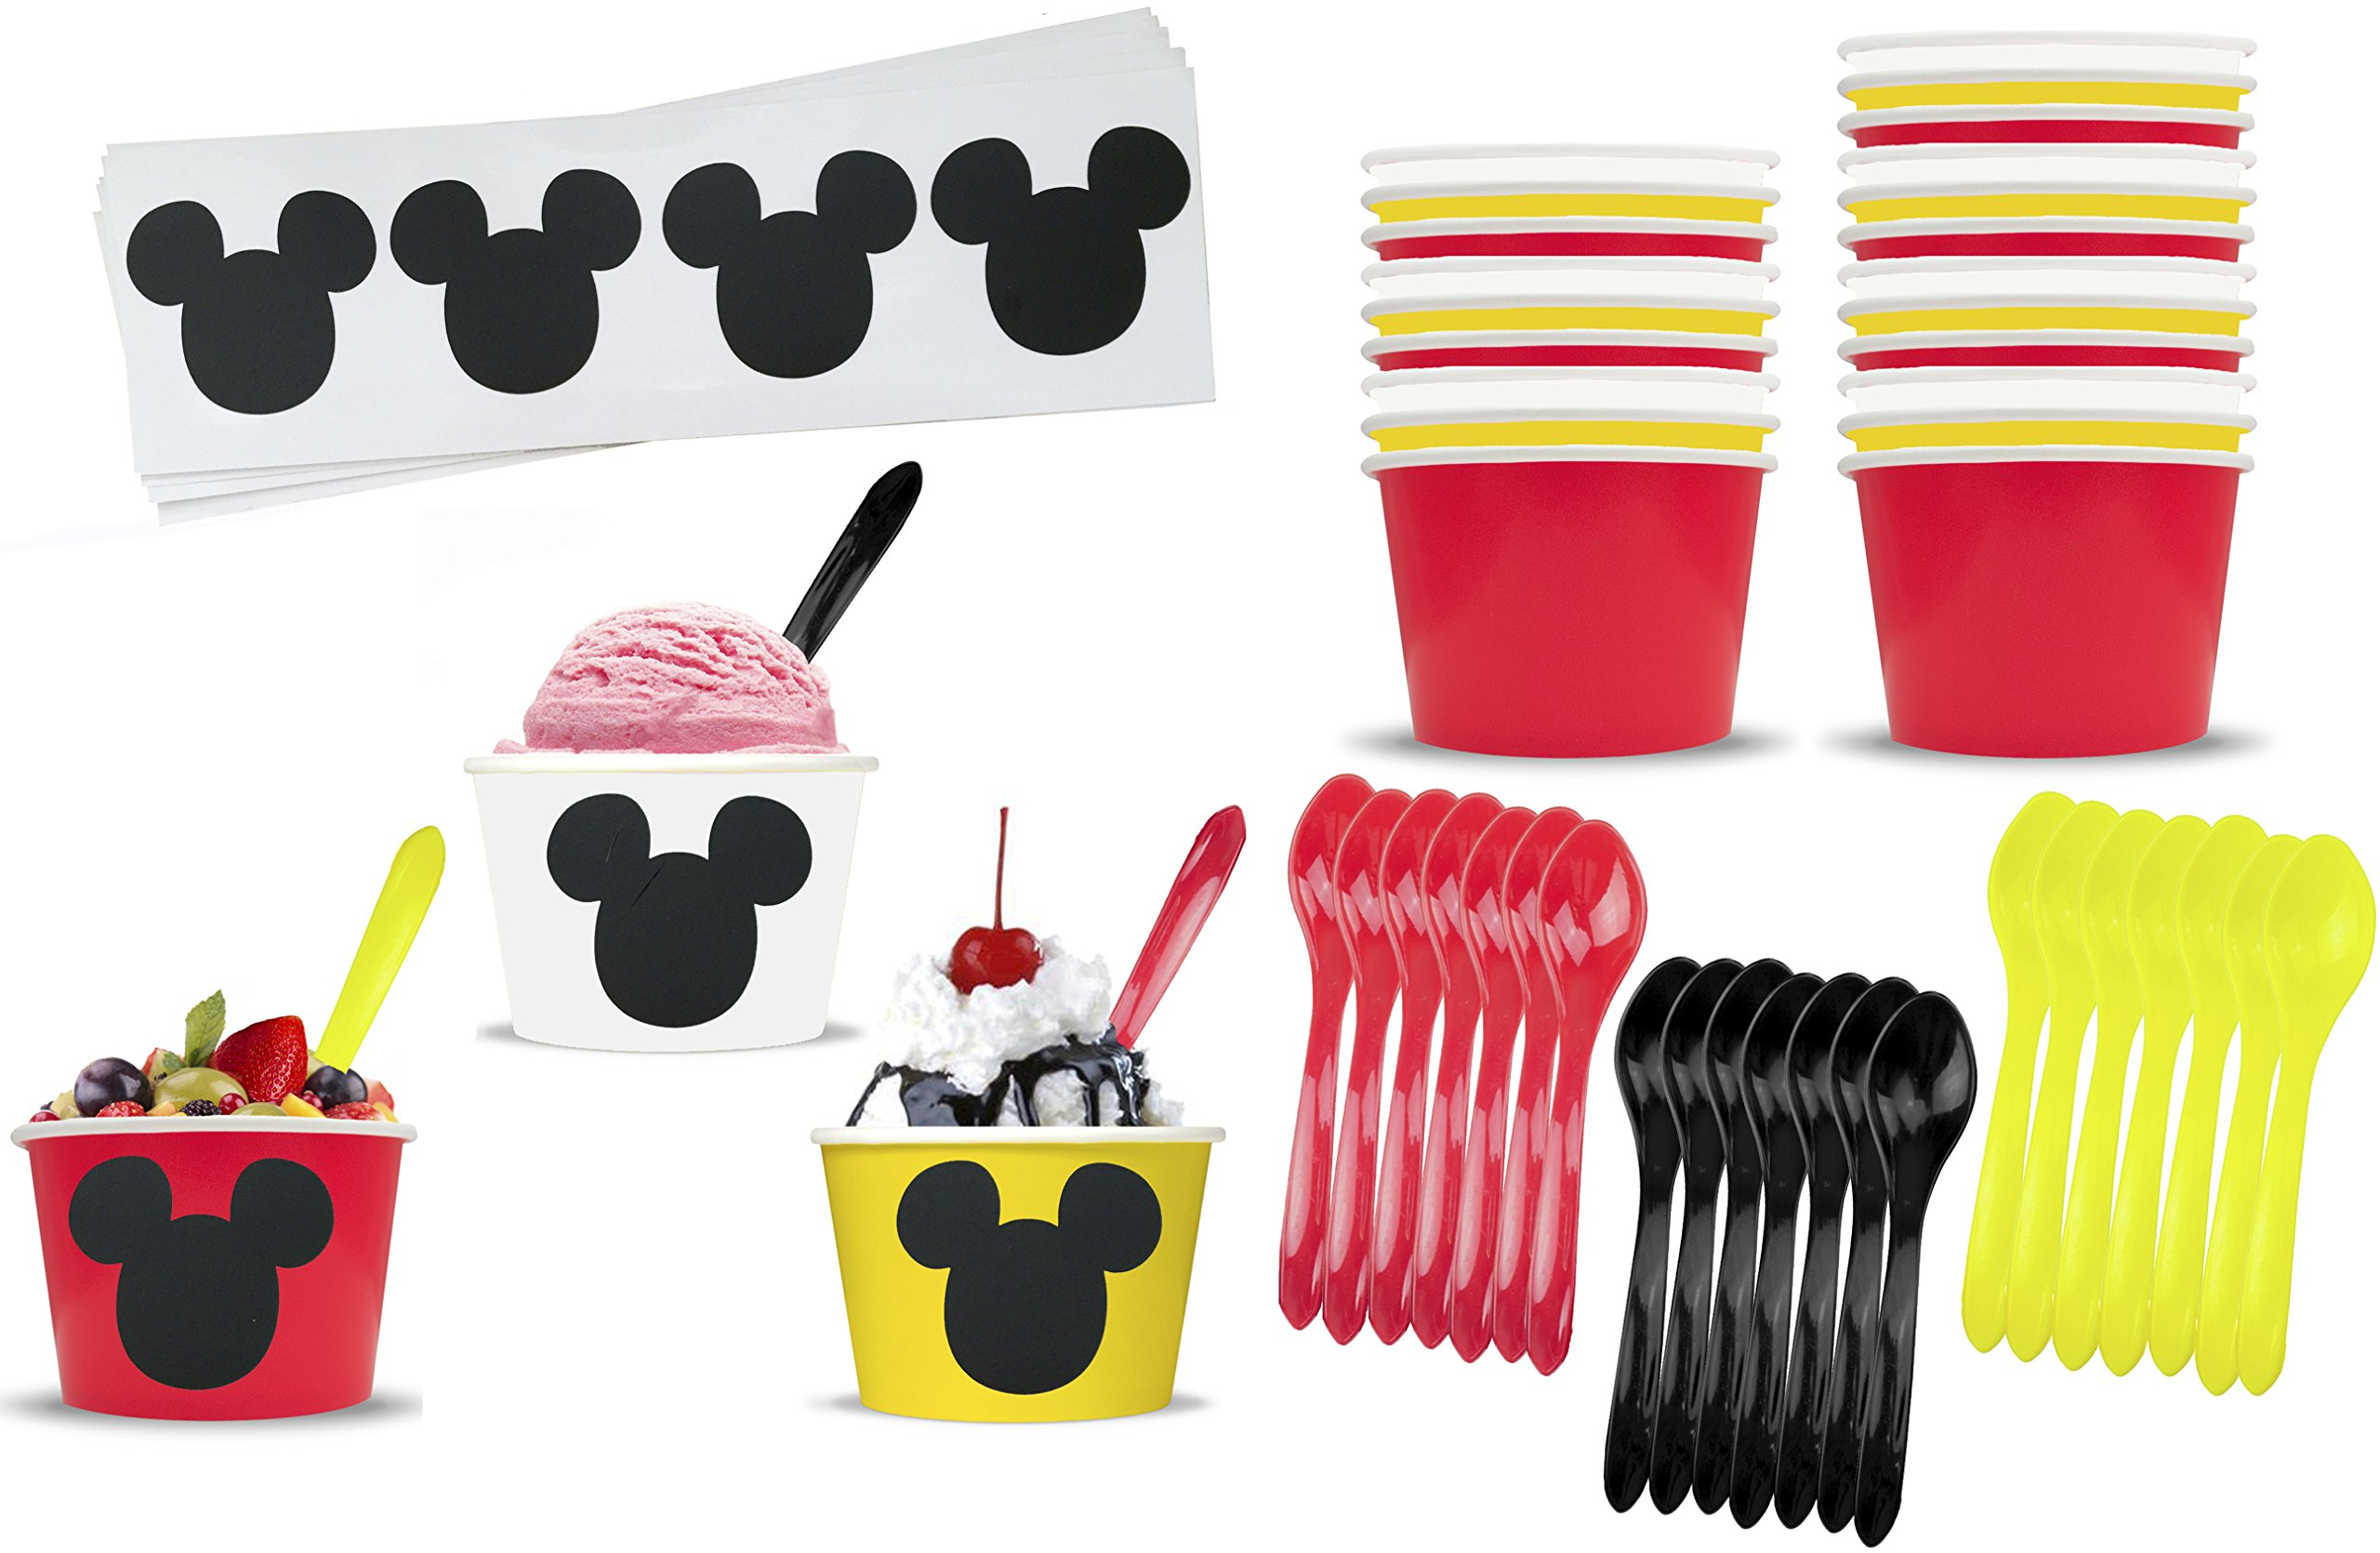 Mickey Mouse Inspired Ice Cream Party Set with 8 Ounce Cups, Plastic Spoons and Mouse Ear Chalkboard Labels 24 Each Red, Black, Yellow, White by Outside the Box Papers